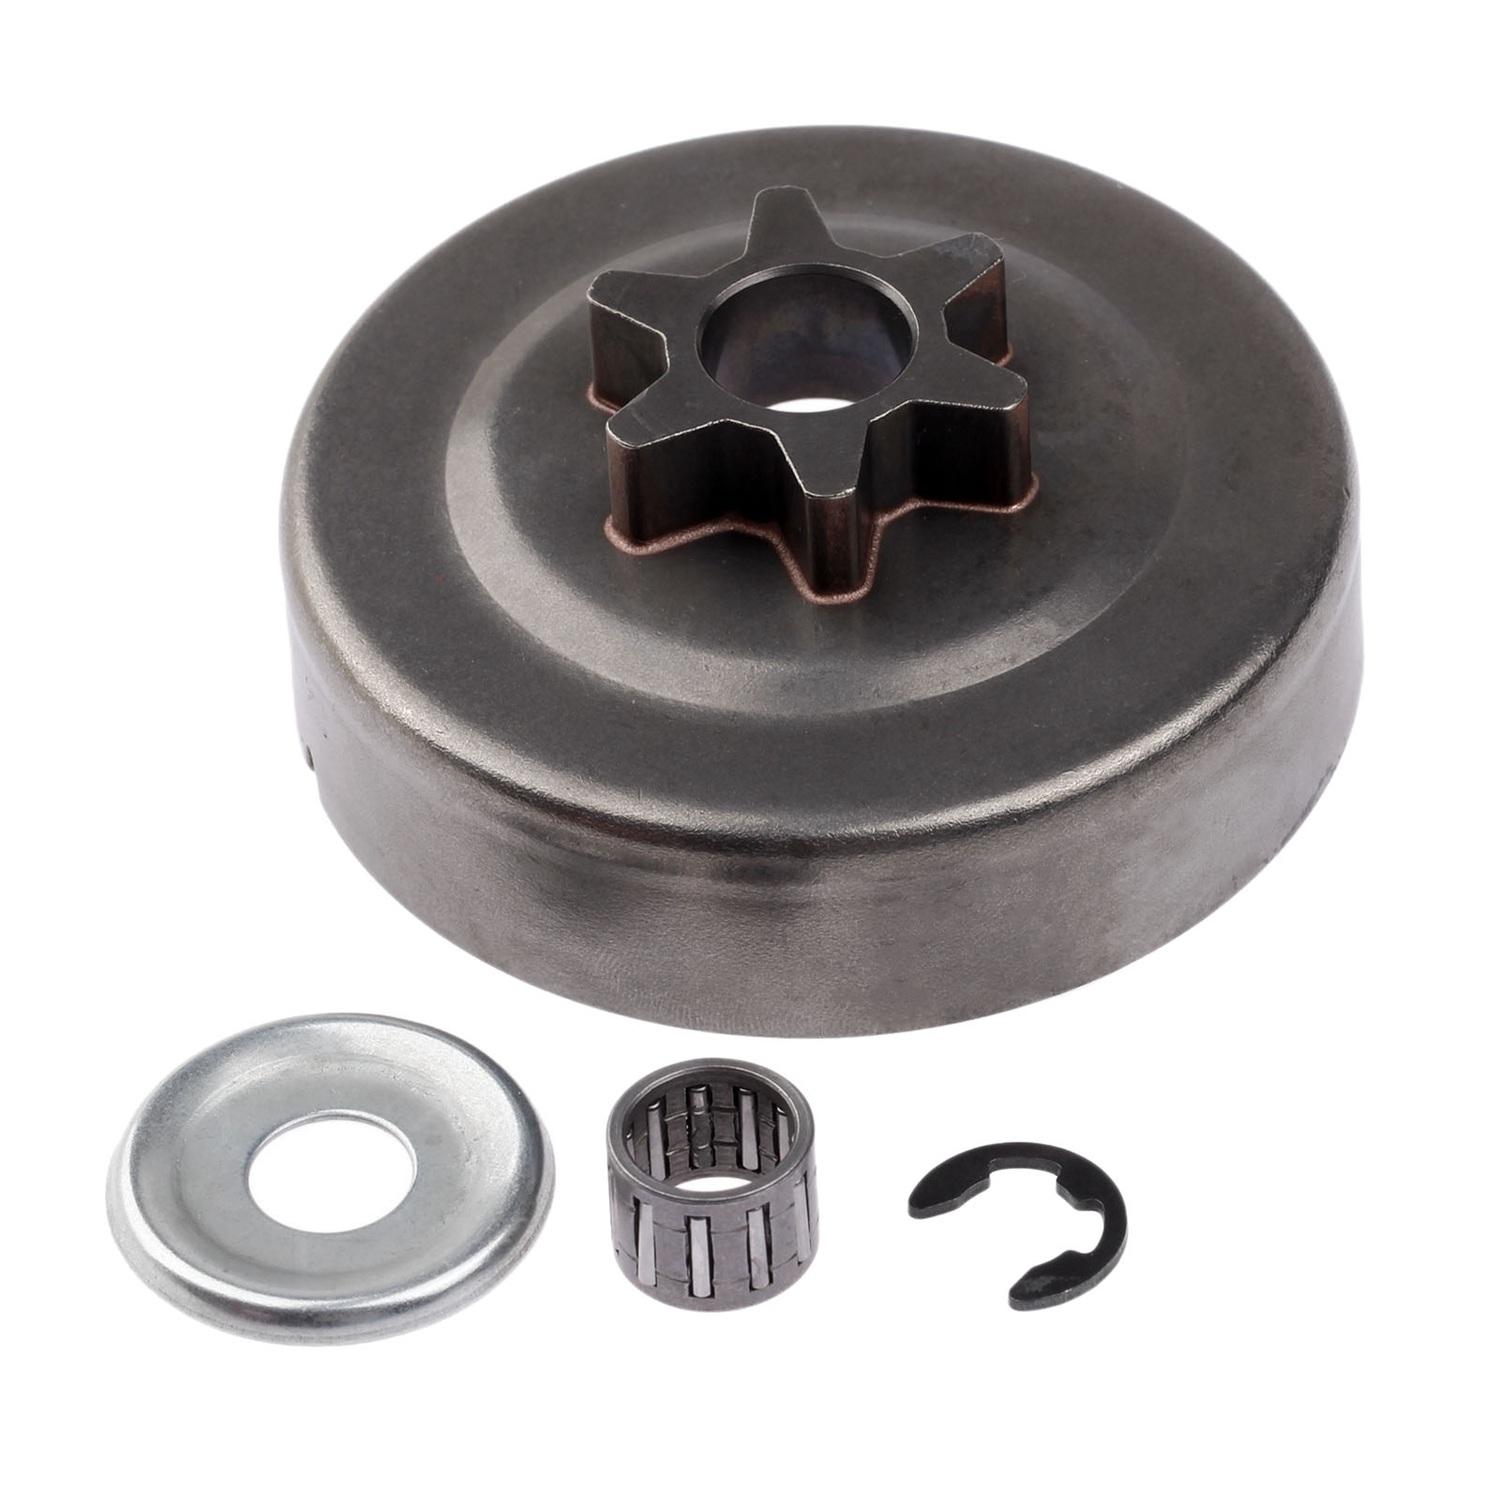 3/8 6T Clutch Drum Sprocket Washer E Clip Kit For Stihl Chainsaw 017 018 021 023 025 Ms170 Ms180 Ms210 Ms230 Ms250 1123|Furniture Accessories|   - AliExpress